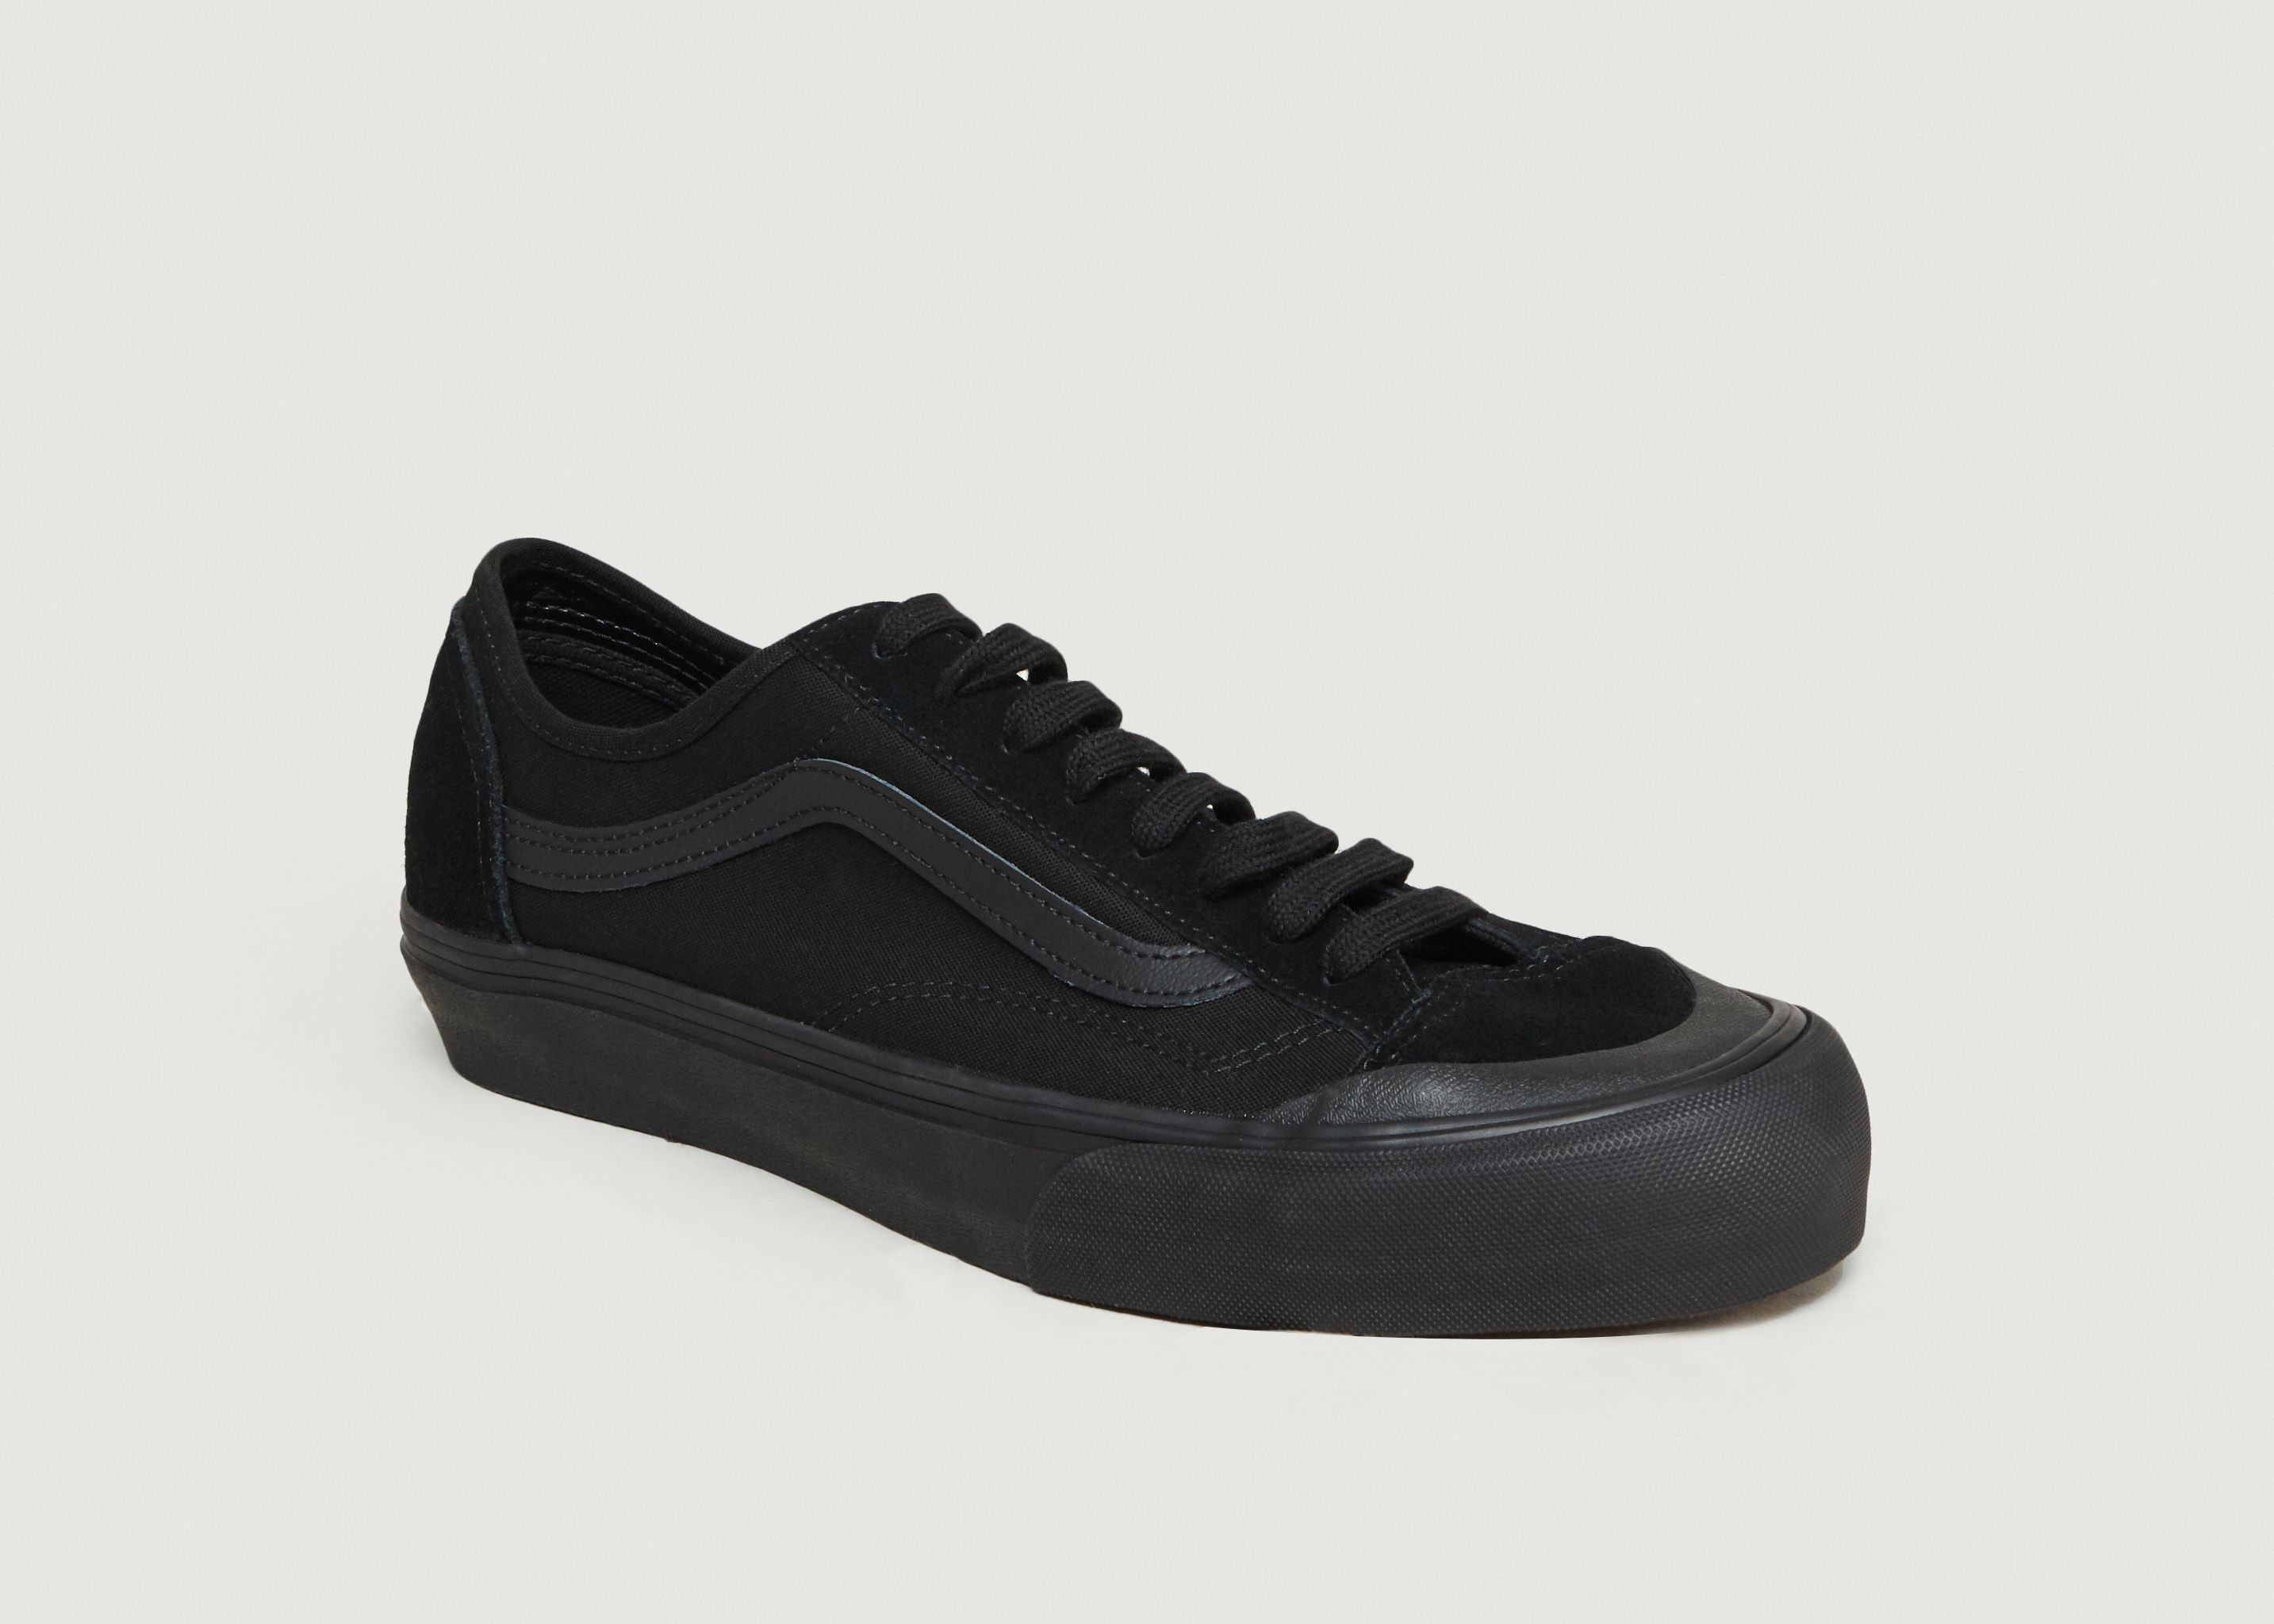 35bfe49f9a86ae Decon SF Suede Skate Shoes Black Vans